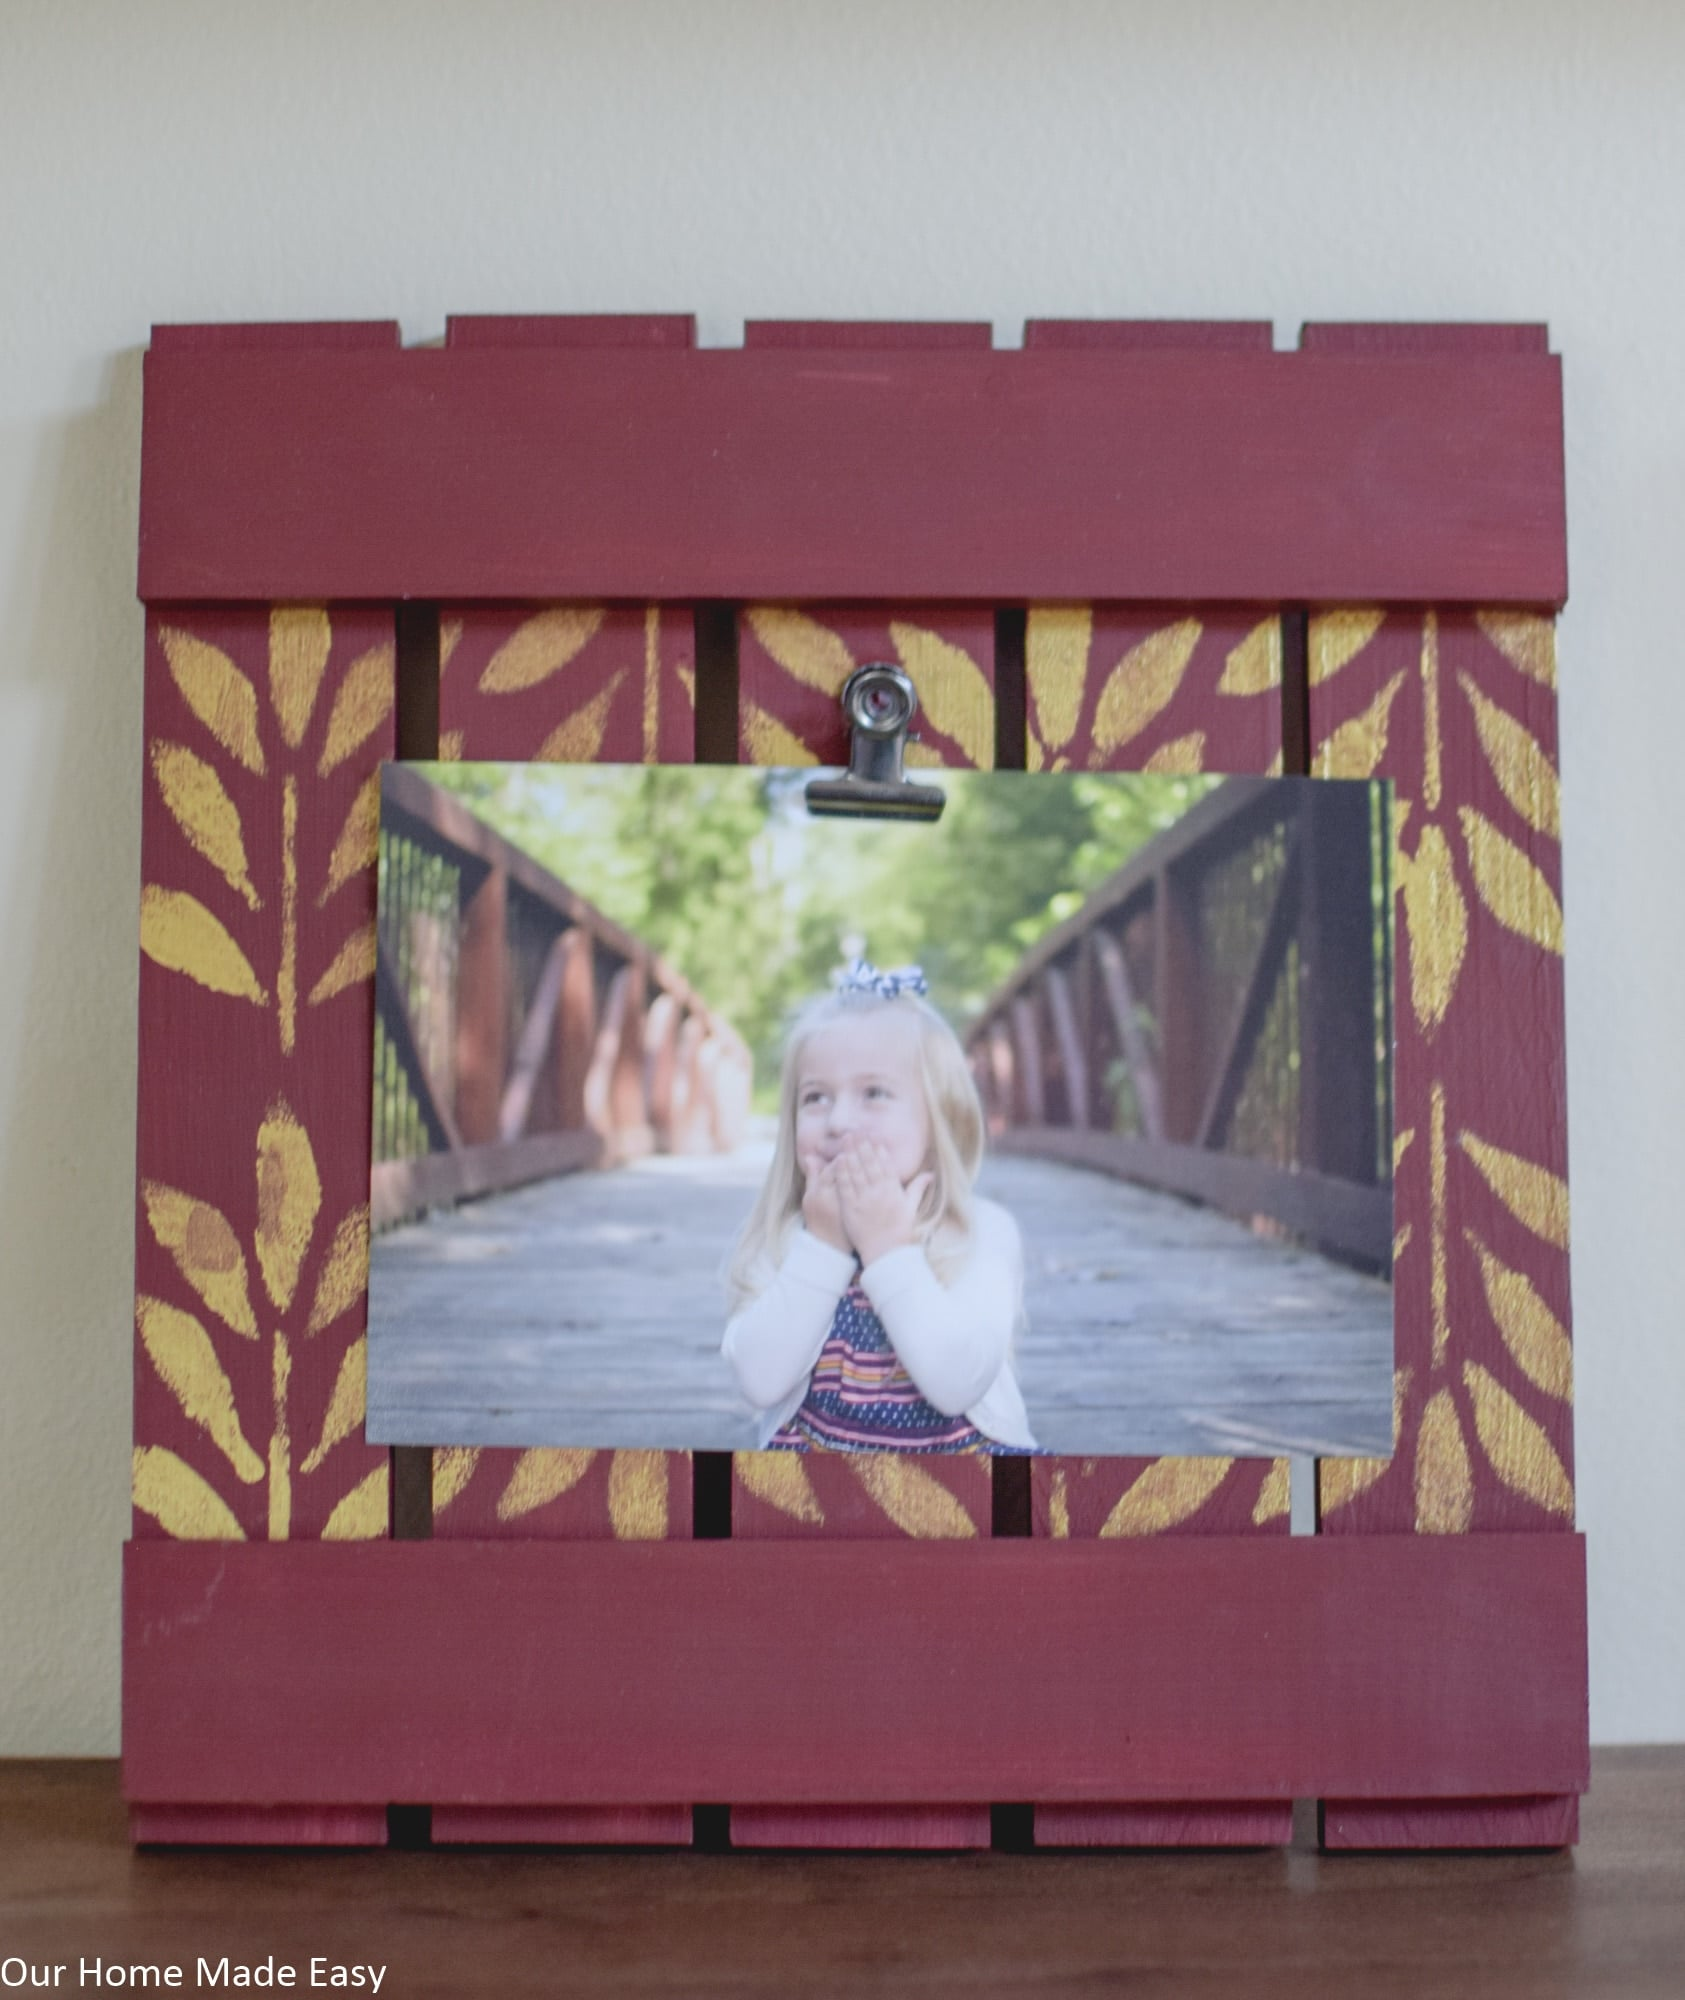 Complete the wood picture frame by attaching a picture clip to hold the picture